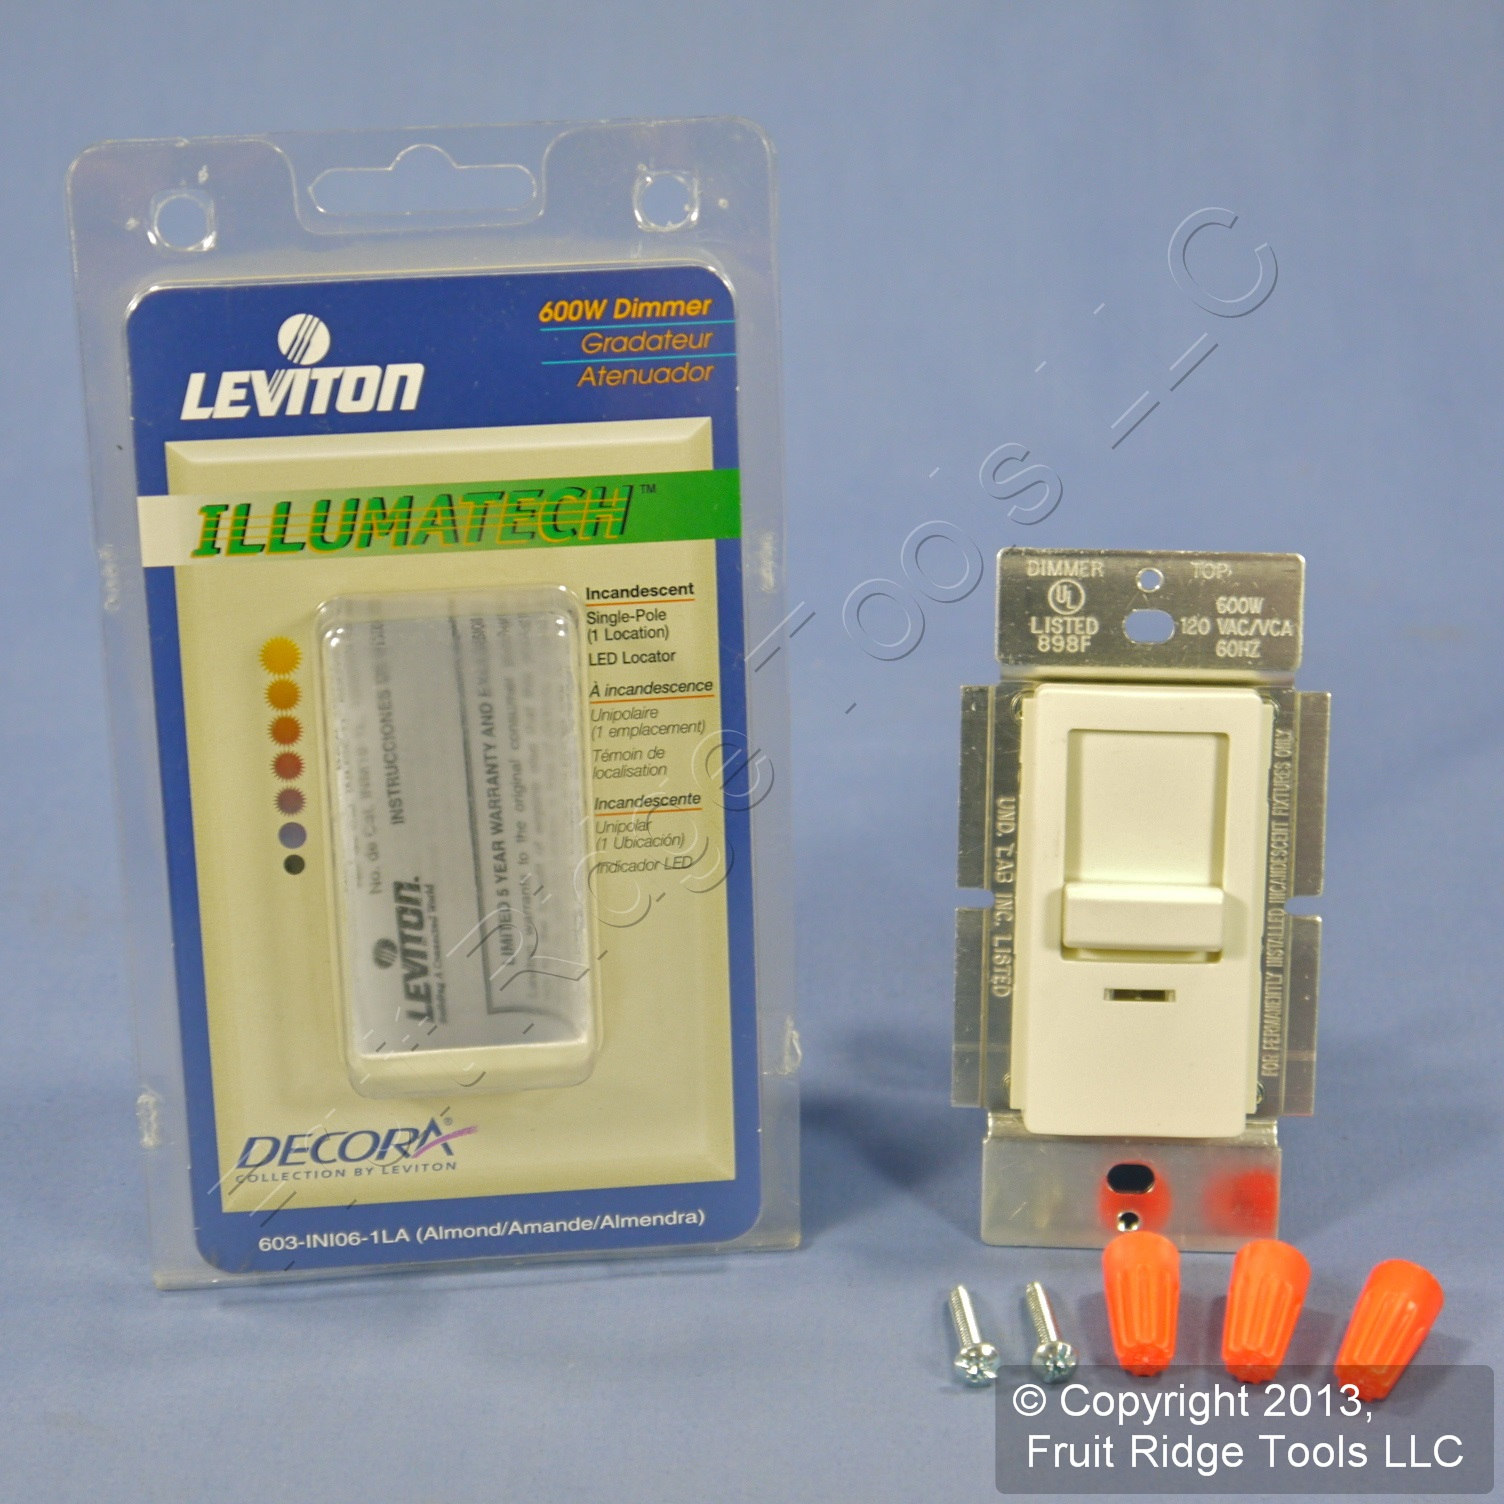 Leviton Ivory Illumatech Dimmer Switch 600w Incandescent